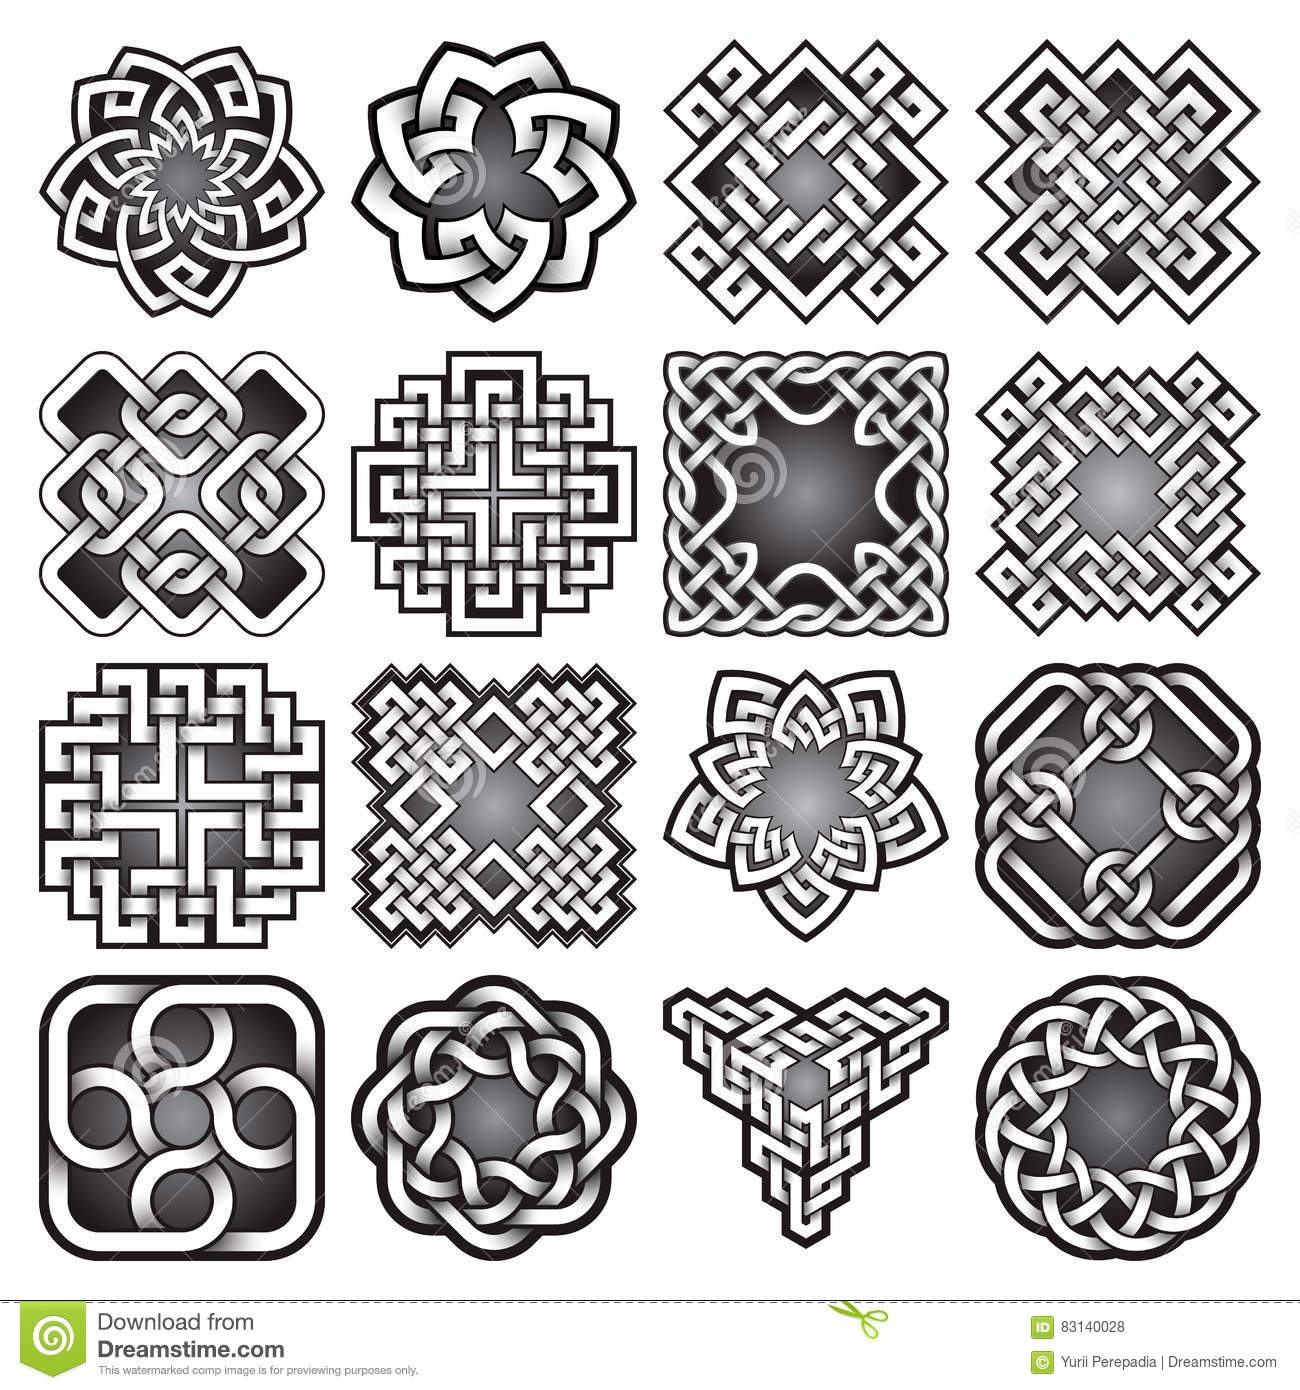 Set of abstract sacred geometry symbols in celtic knots style set of abstract sacred geometry symbols in celtic knots style graphic illustration biocorpaavc Choice Image